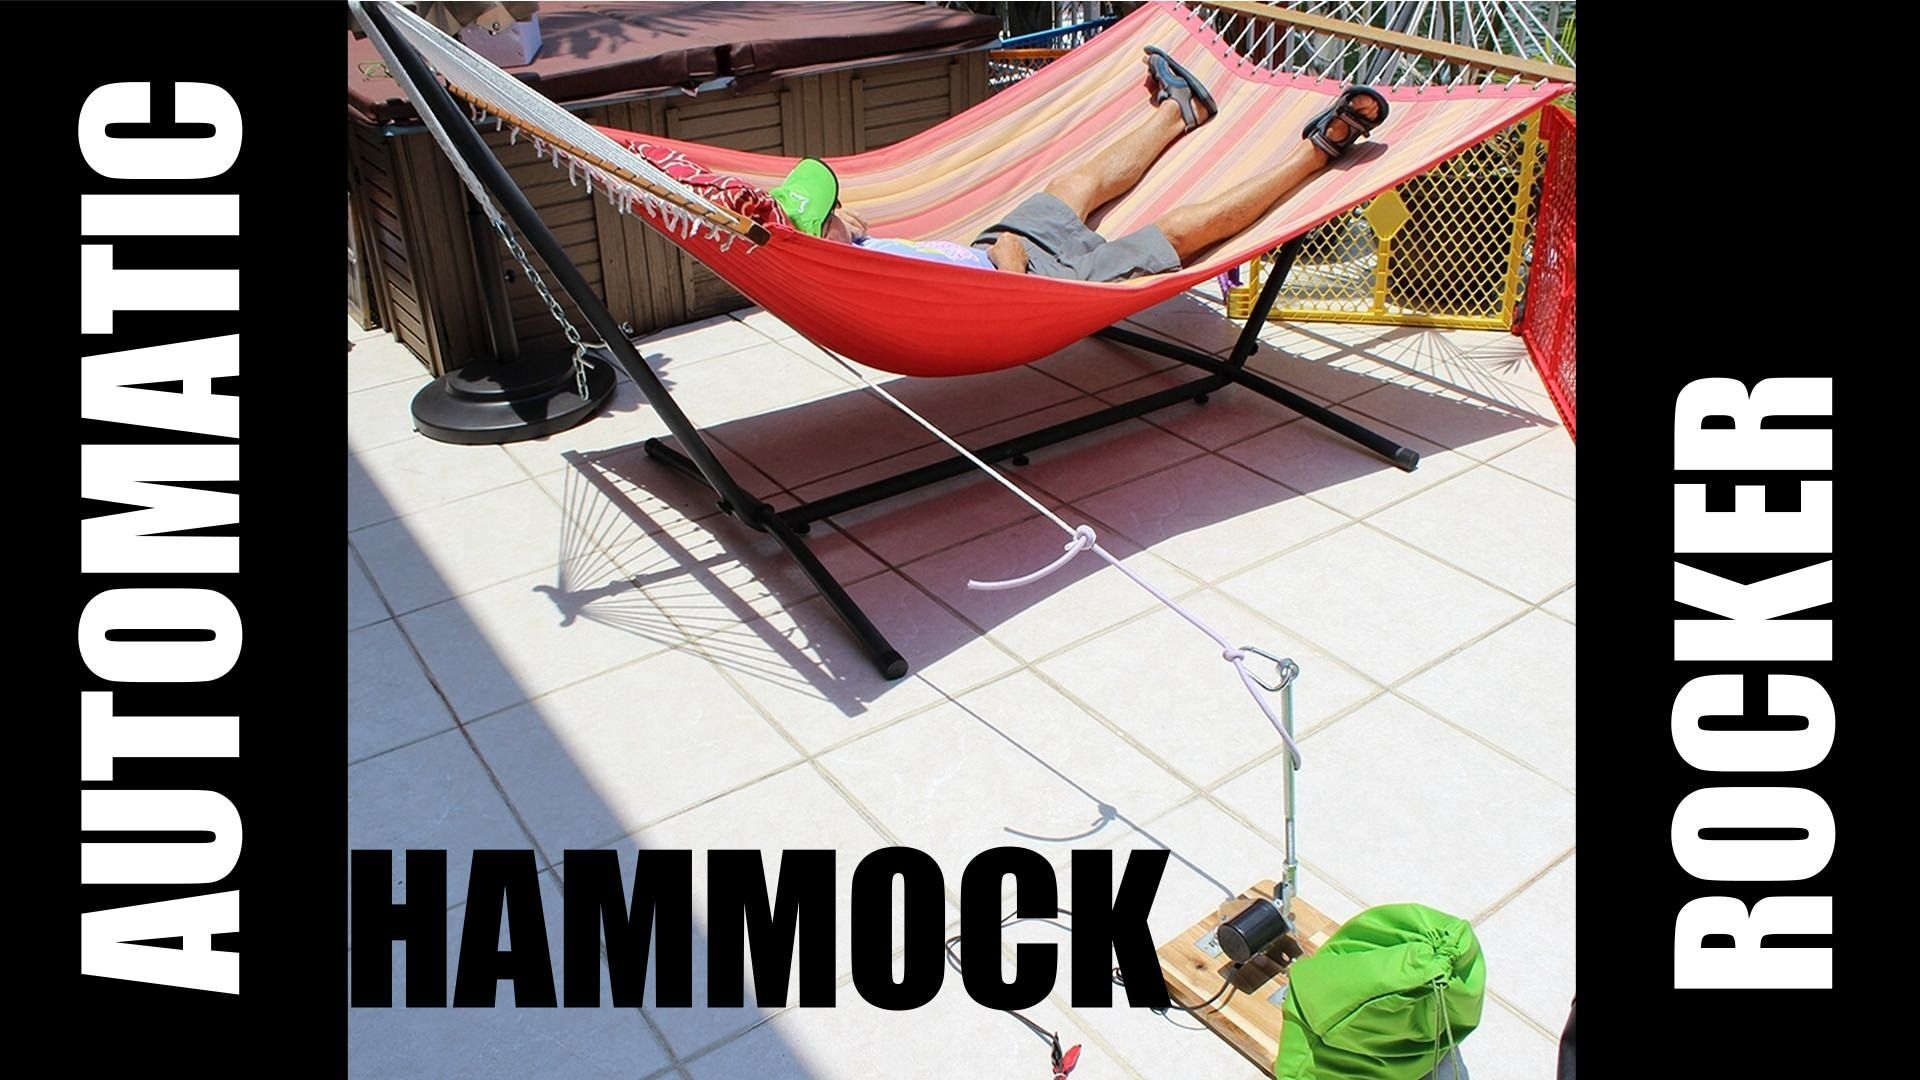 Automatic swinger for hammocks